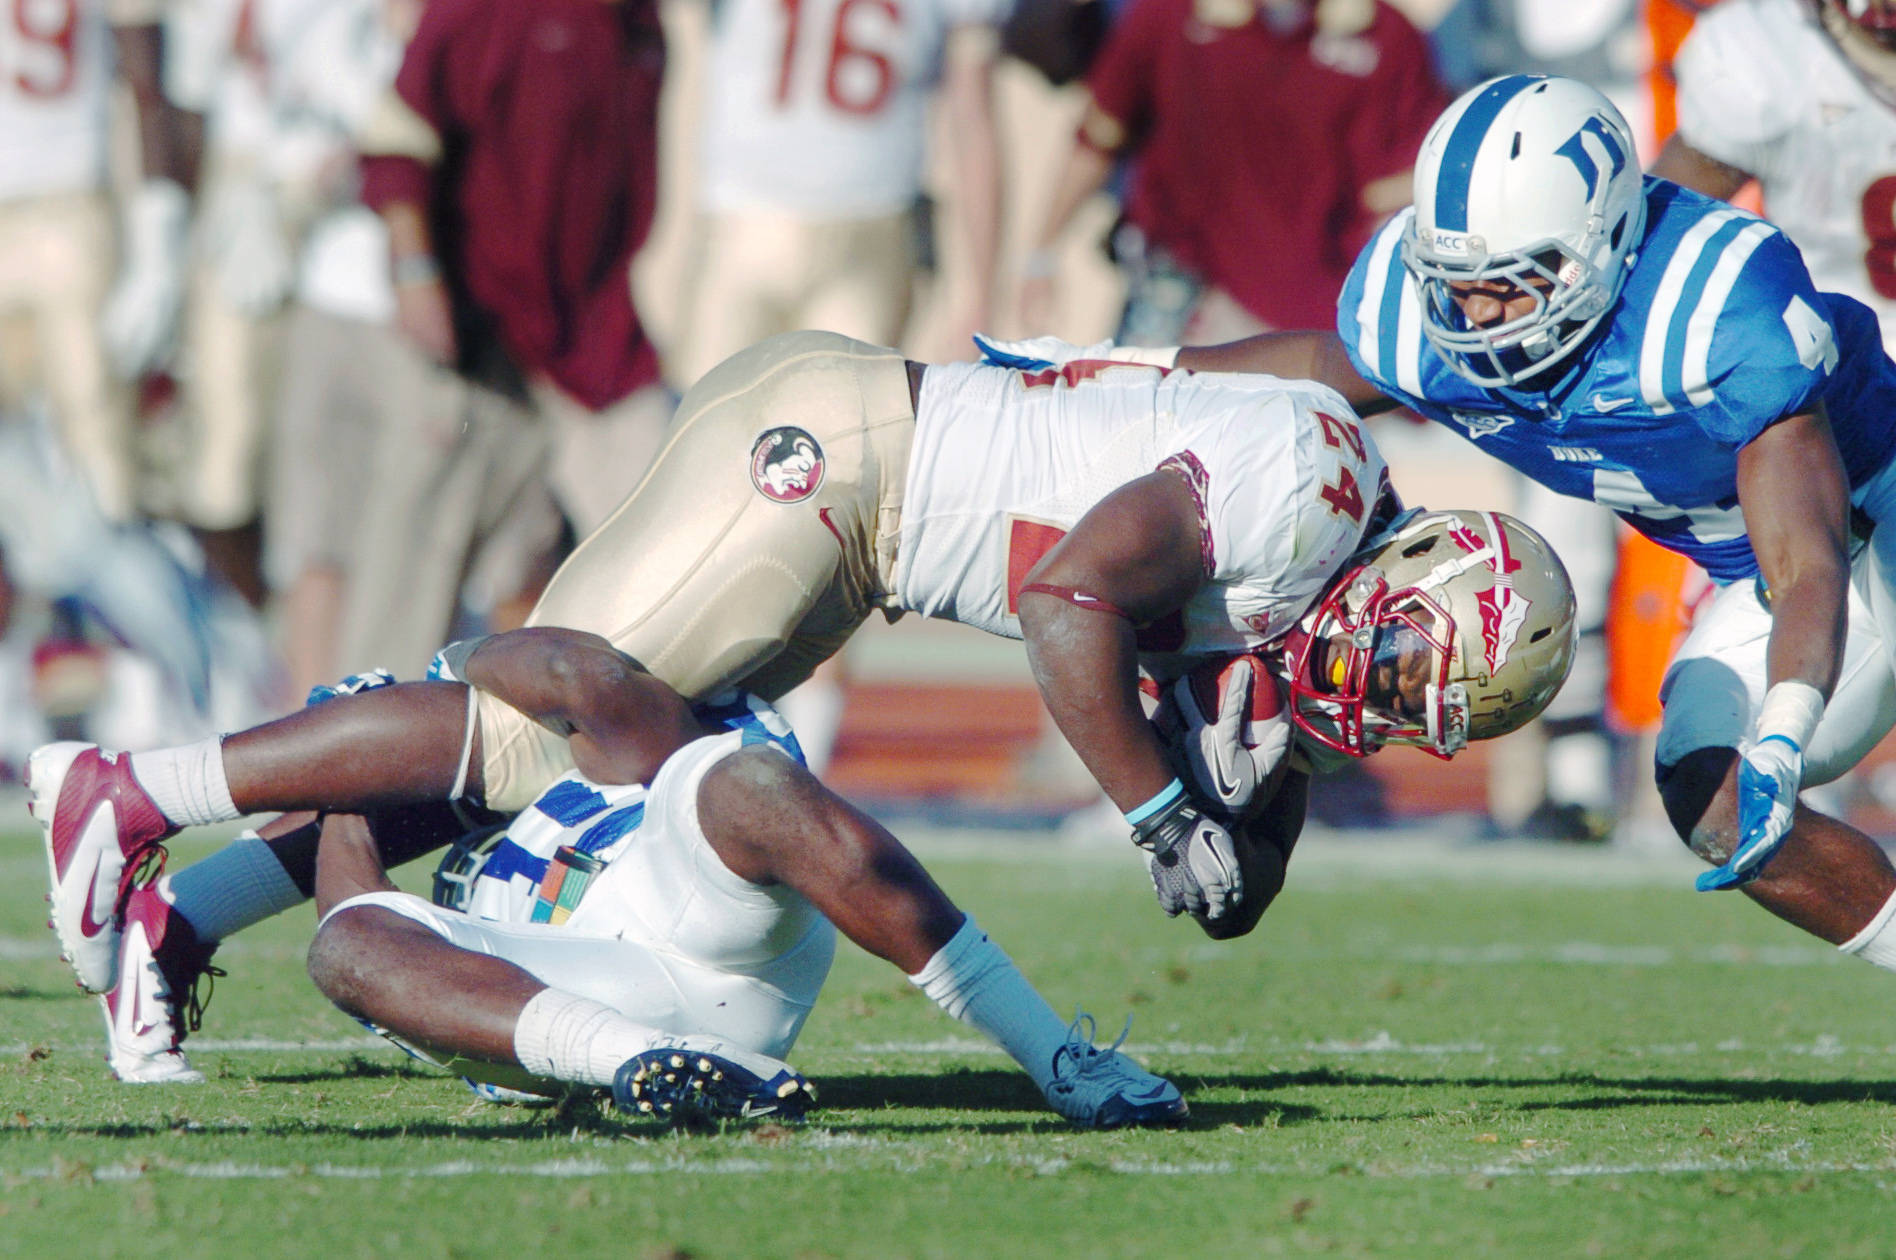 Florida State's Lonnie Pryor (24) reaches for a first down by Duke's Matt Daniels, left, and Walt Canty (4) during an NCAA college football game on Saturday, Oct. 15, 2011, at Wallace Wade Stadium in Durham, N.C. (AP Photo/The Herald-Sun, Bernard Thomas) )